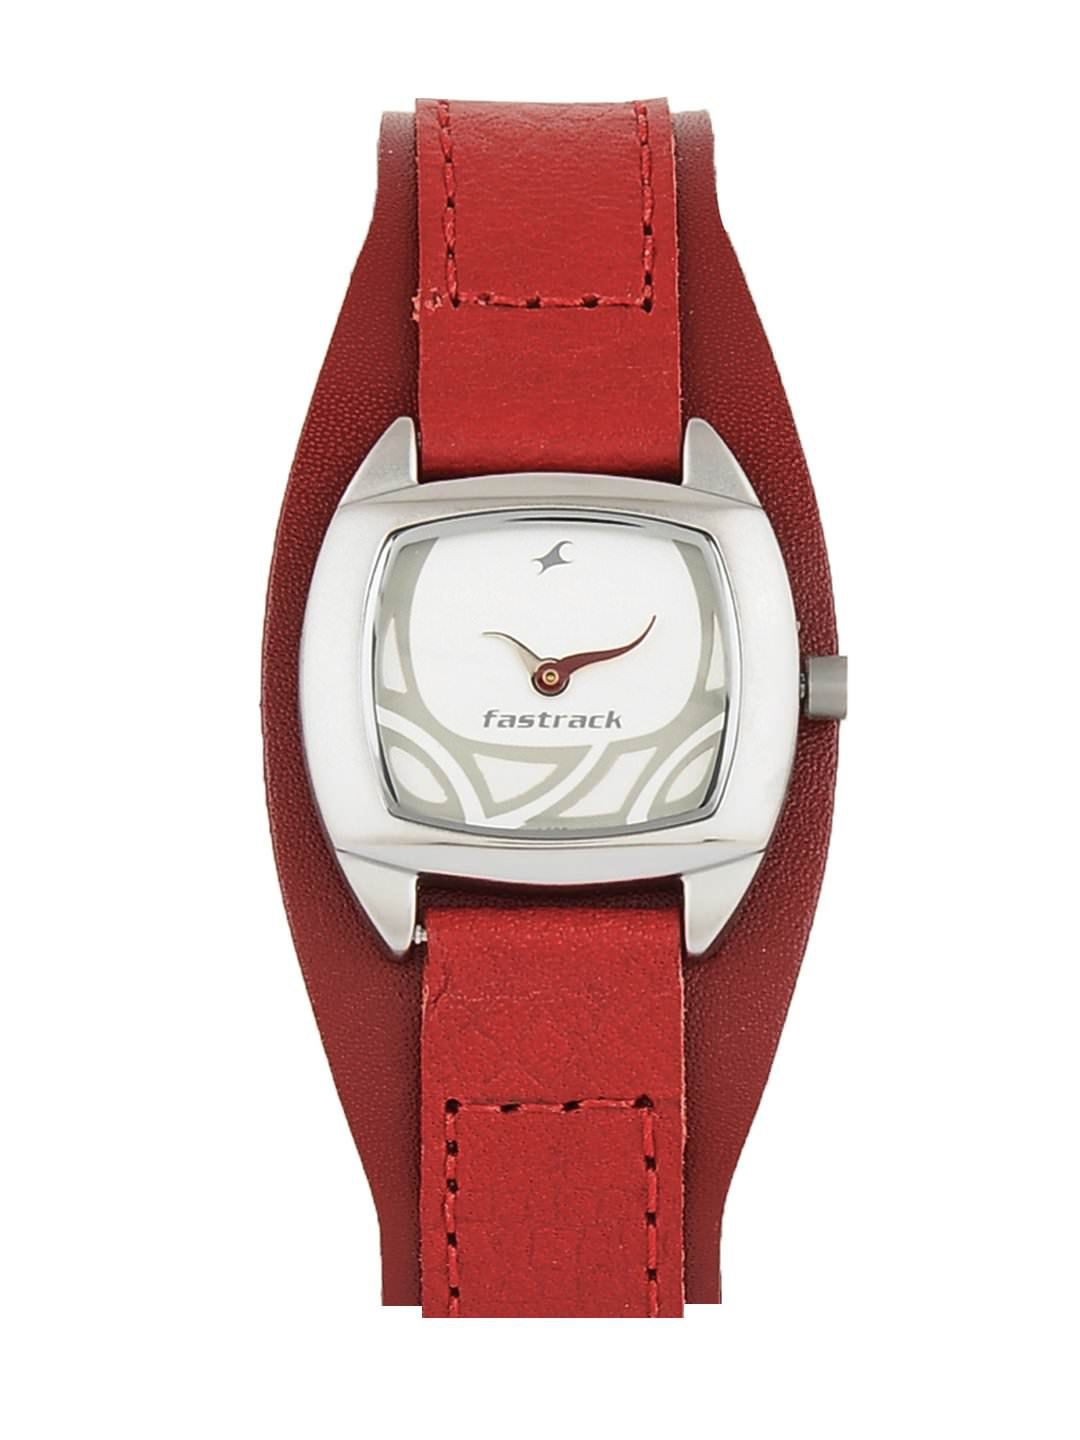 Latest Watches For Girls In Fastrack